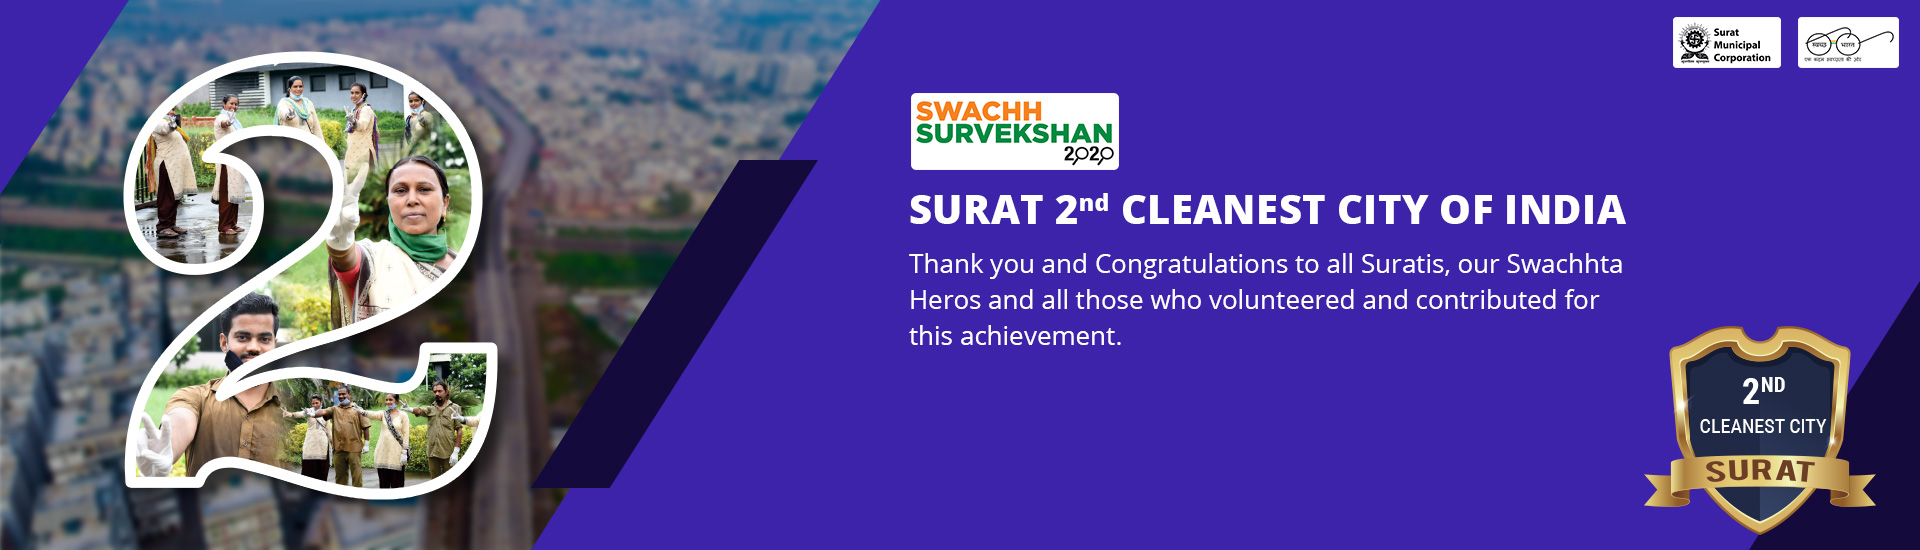 Surat 2nd Cleanest City In India